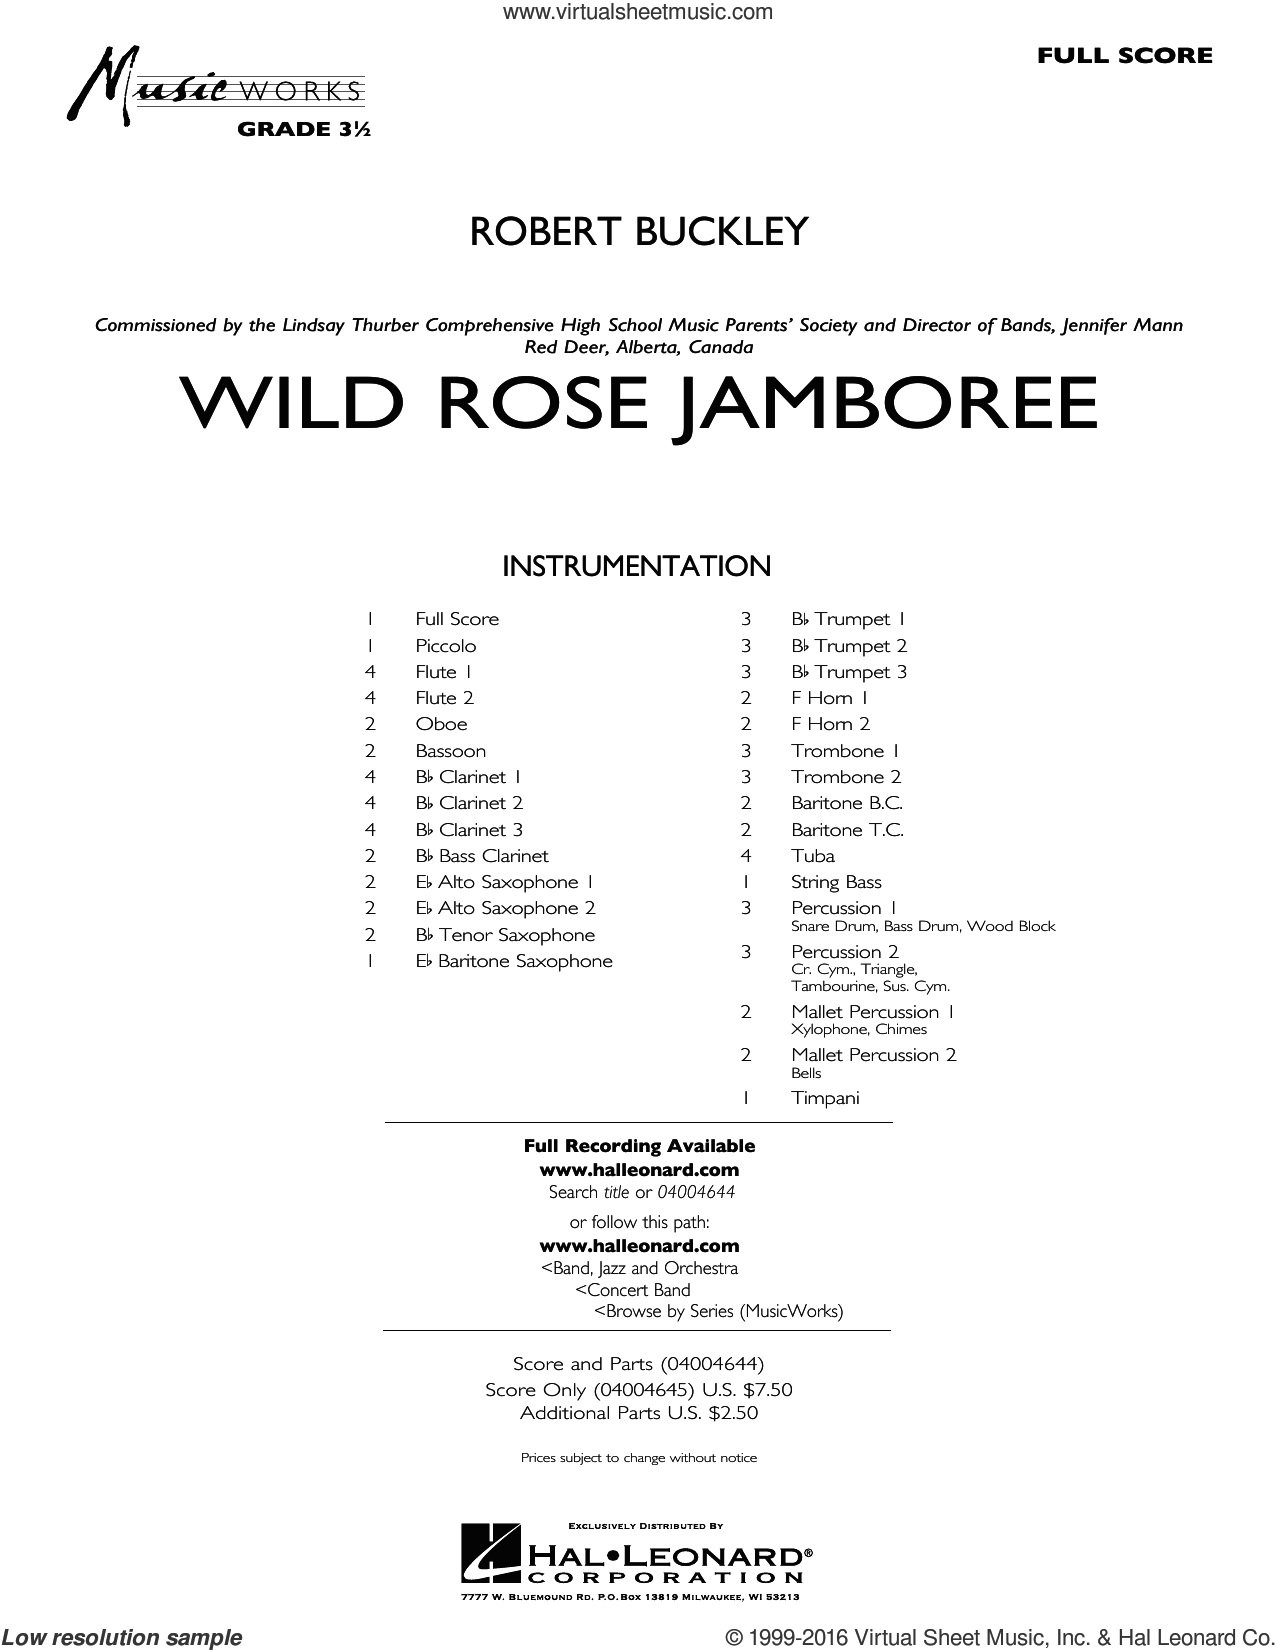 Wild Rose Jamboree (COMPLETE) sheet music for concert band by Robert Buckley